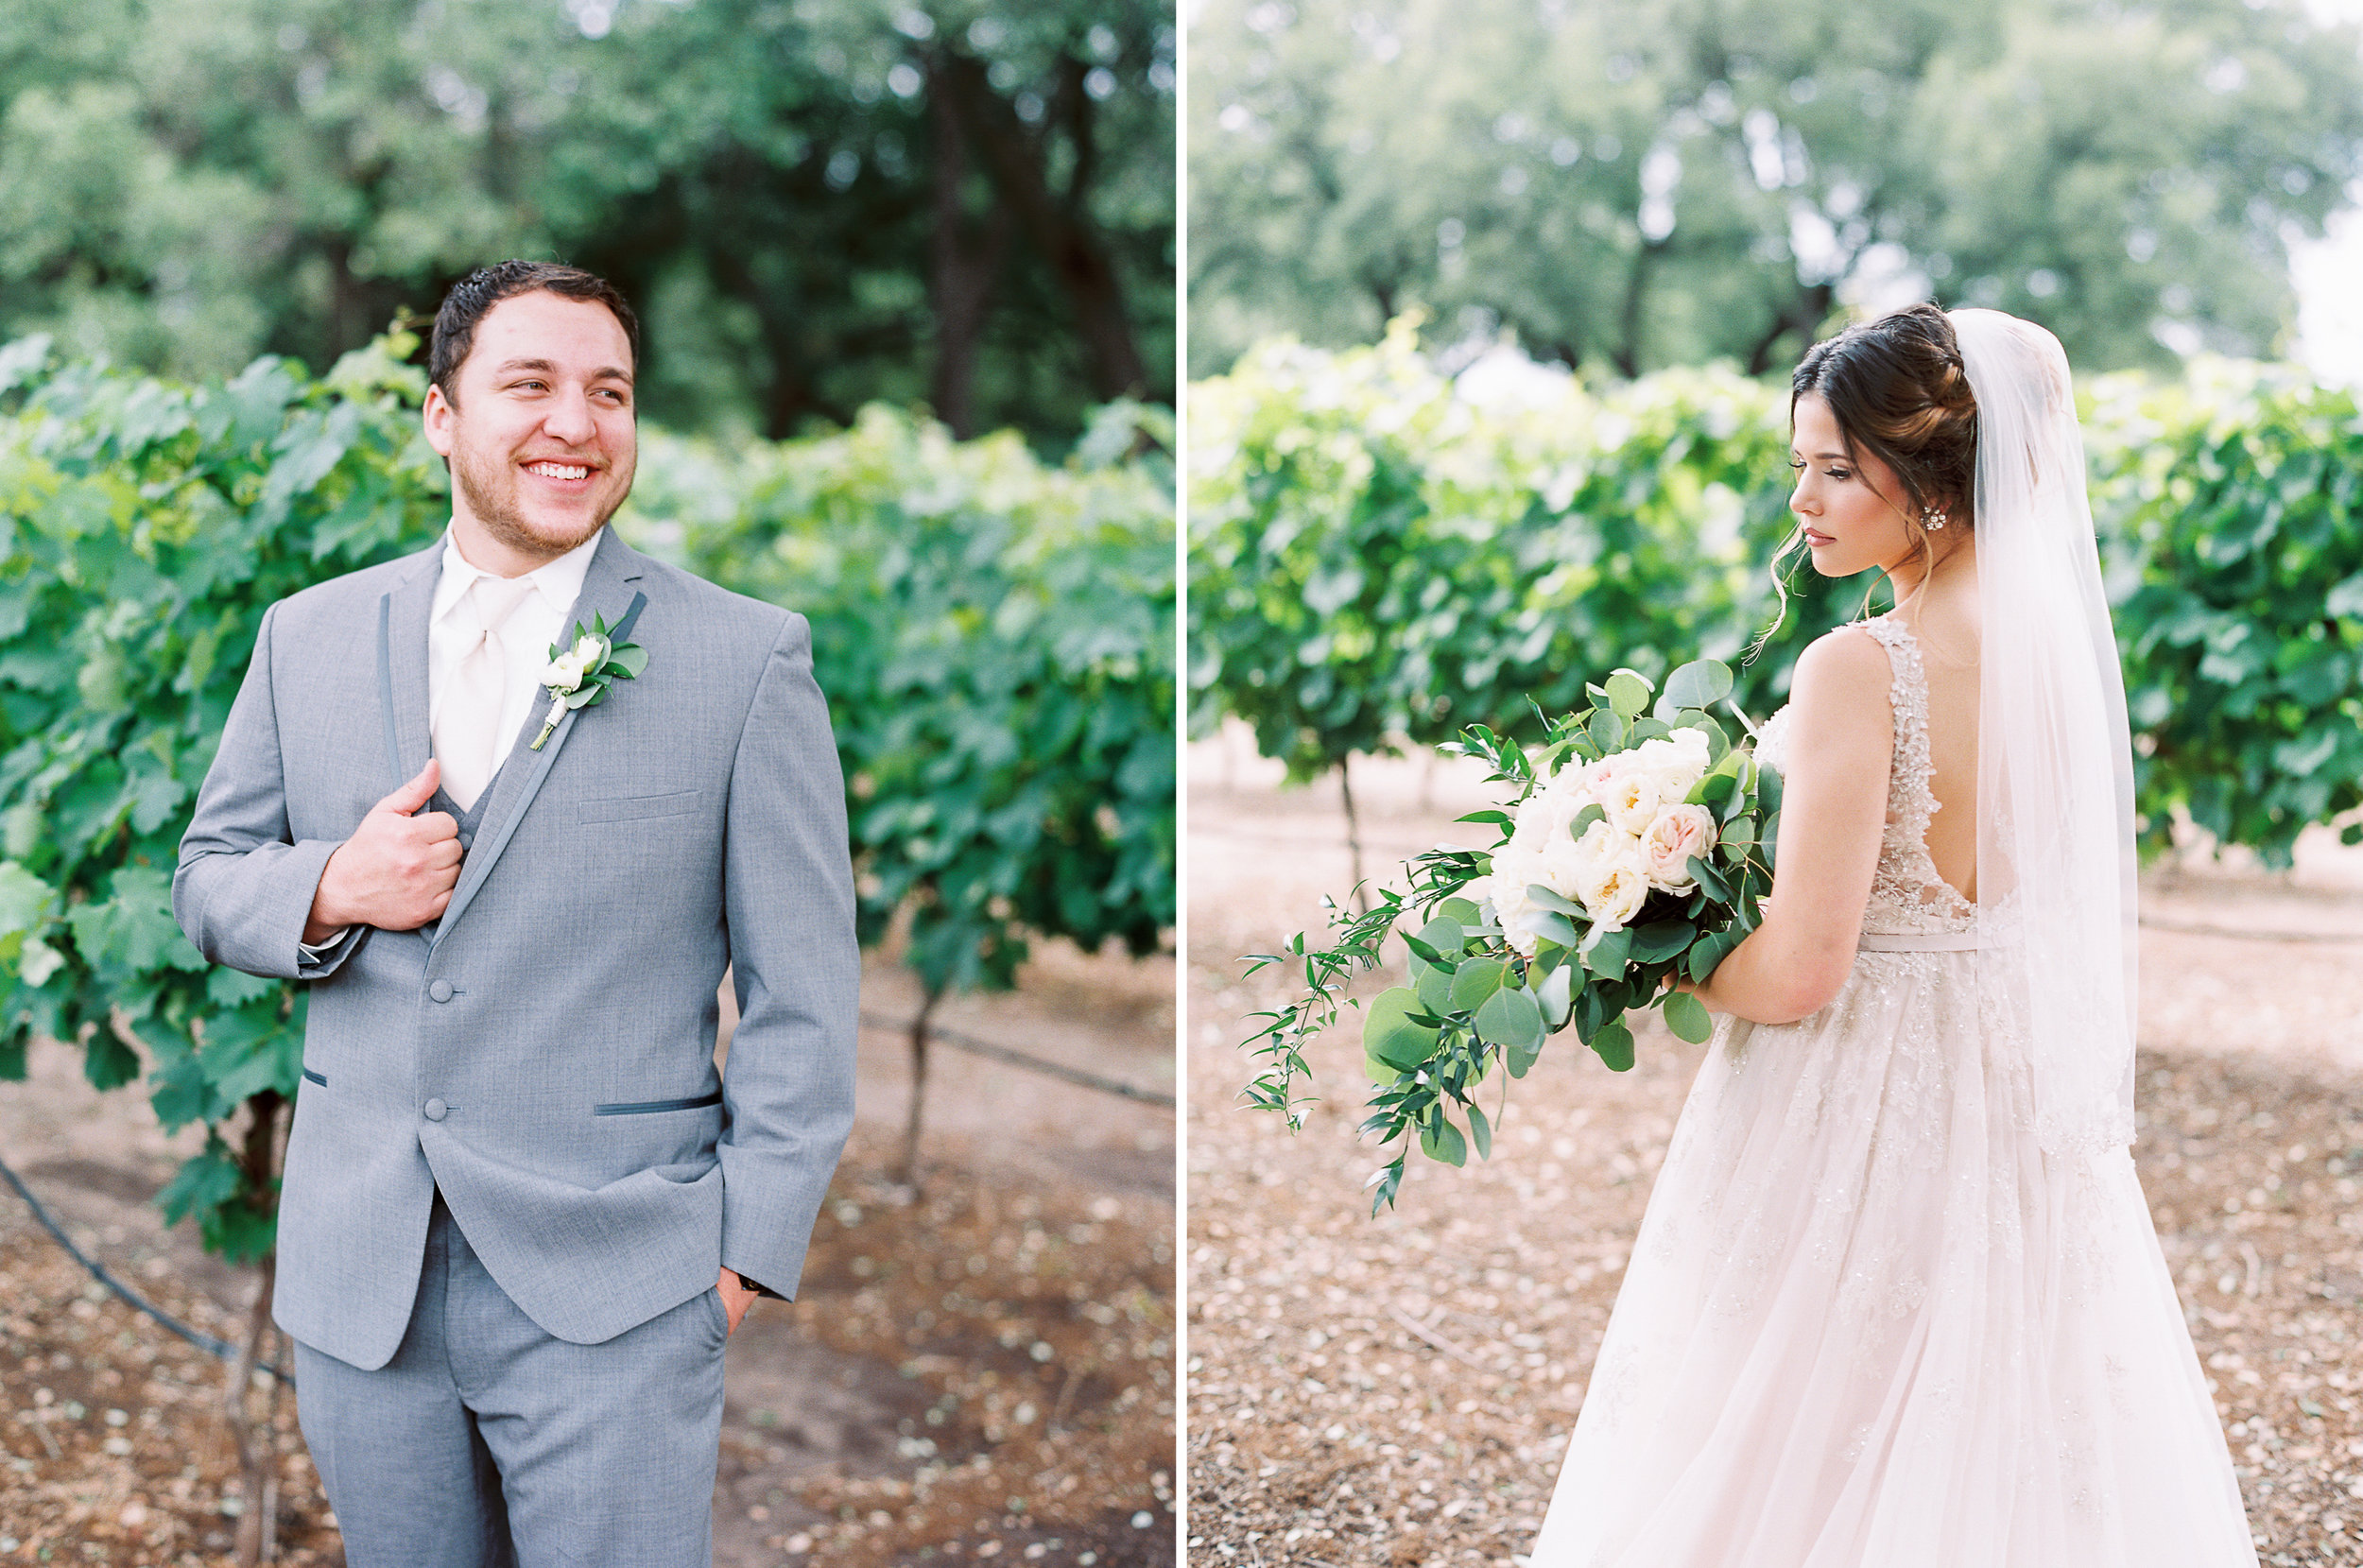 Elegant Spring Vineyard Wedding | Film Wedding Photographer | Austin Wedding Photographer | Beautiful Bride and Groom Photos | Britni Dean Photography // britnidean.com